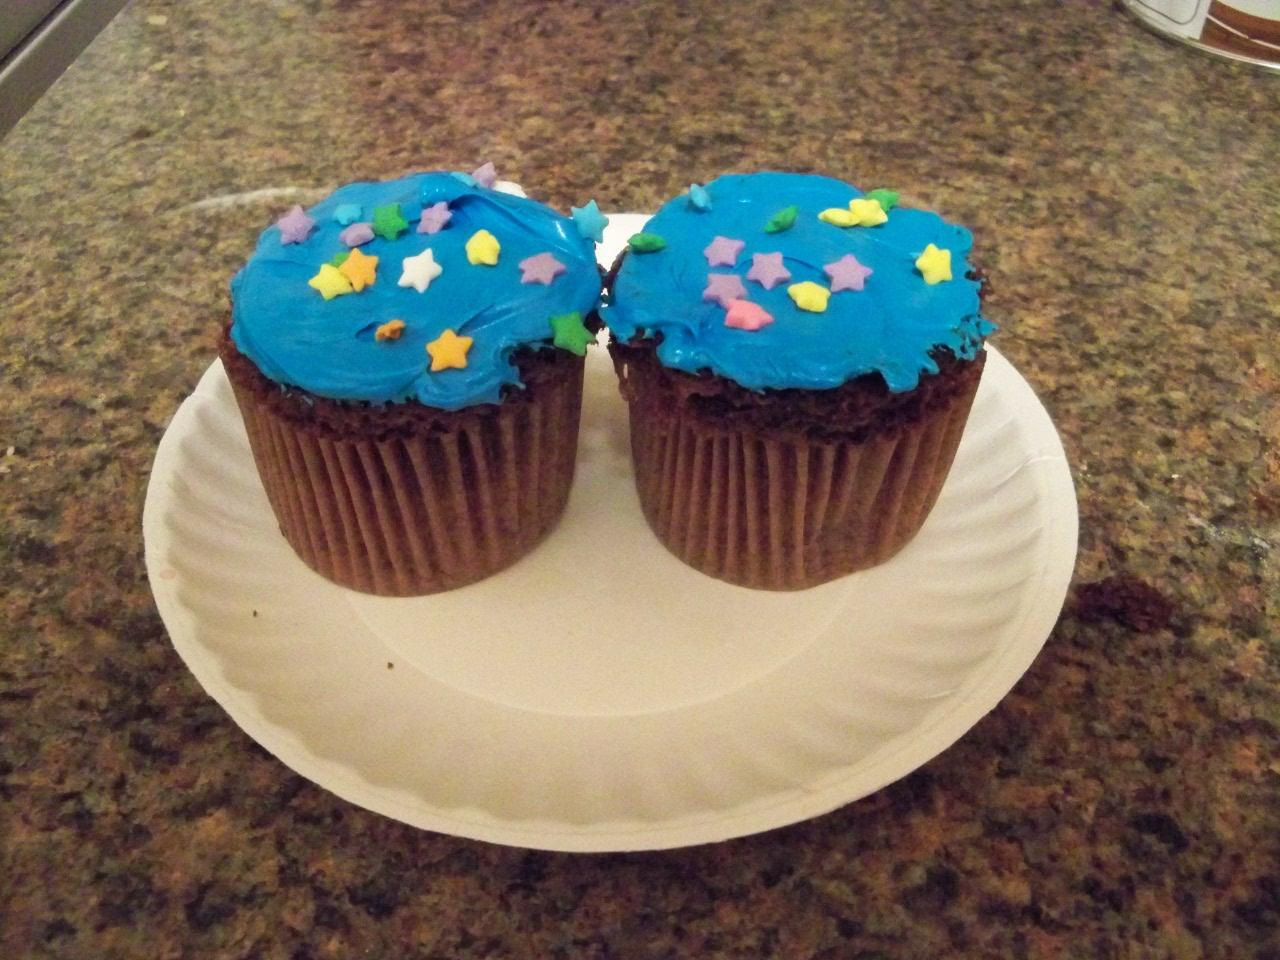 Microwave cupcakes made in minutes!